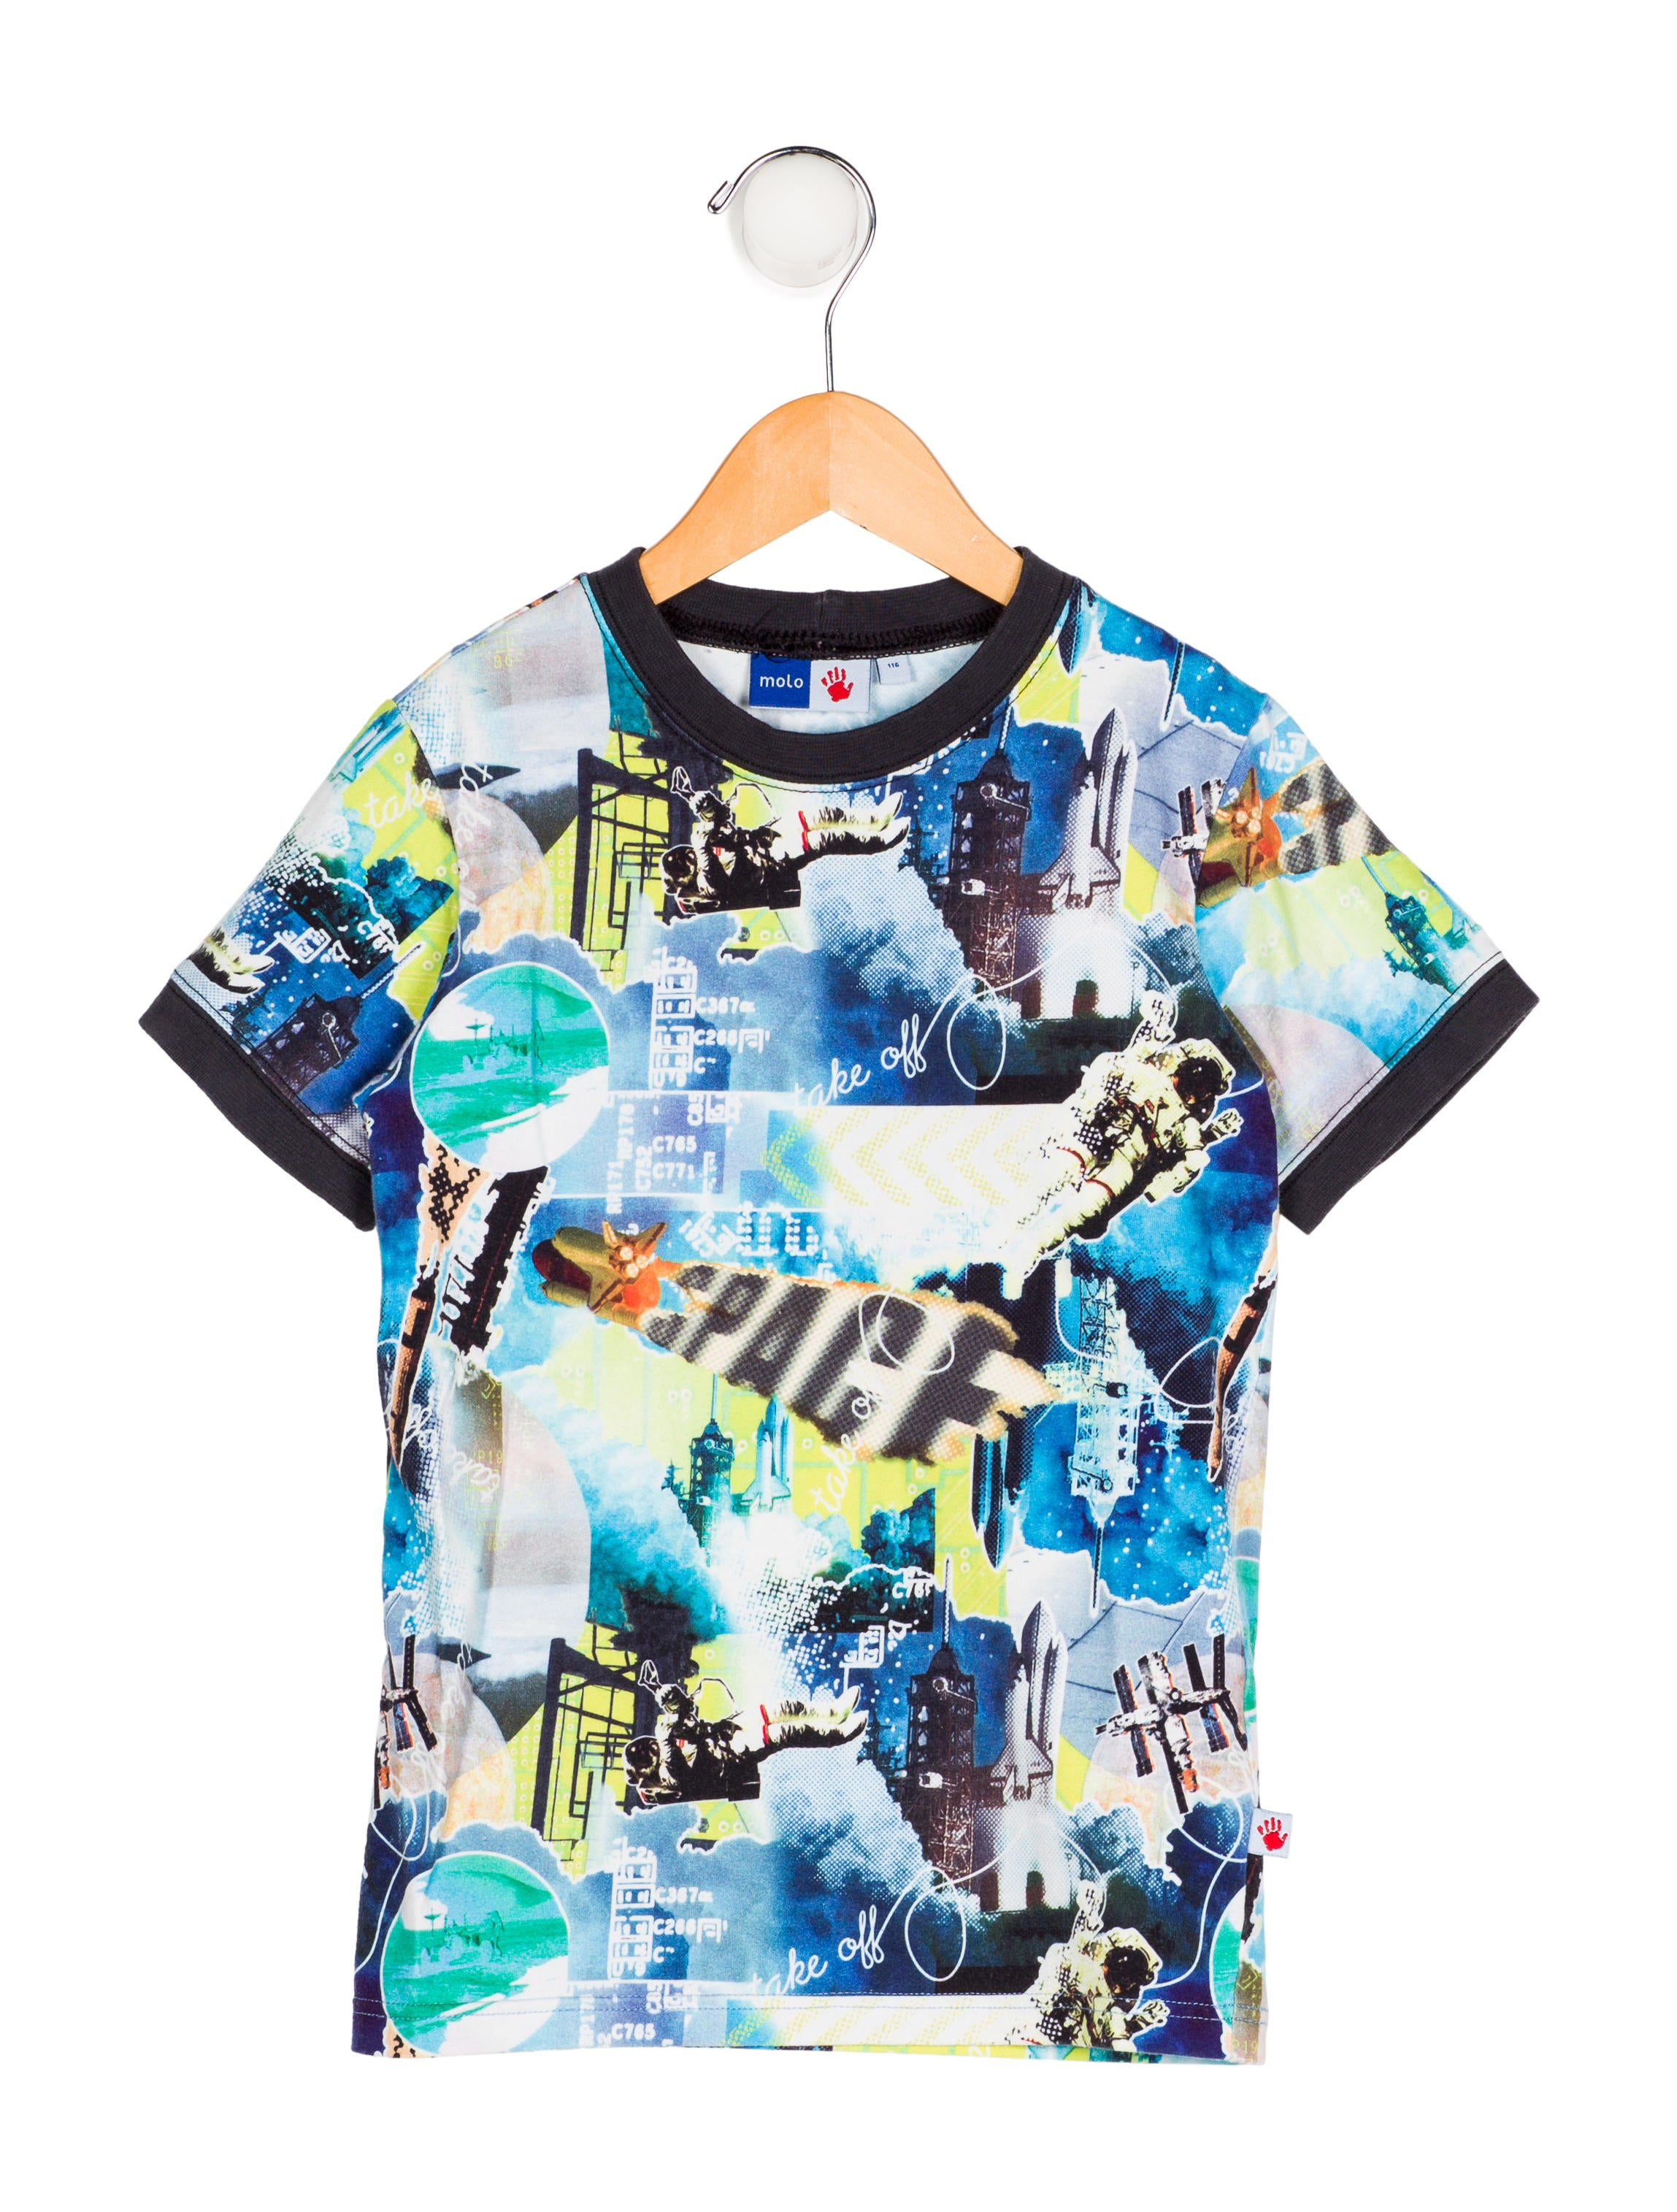 b82ecf818 Molo Boys' Printed Knit Shirt - Boys - WMLLO20080 | The RealReal